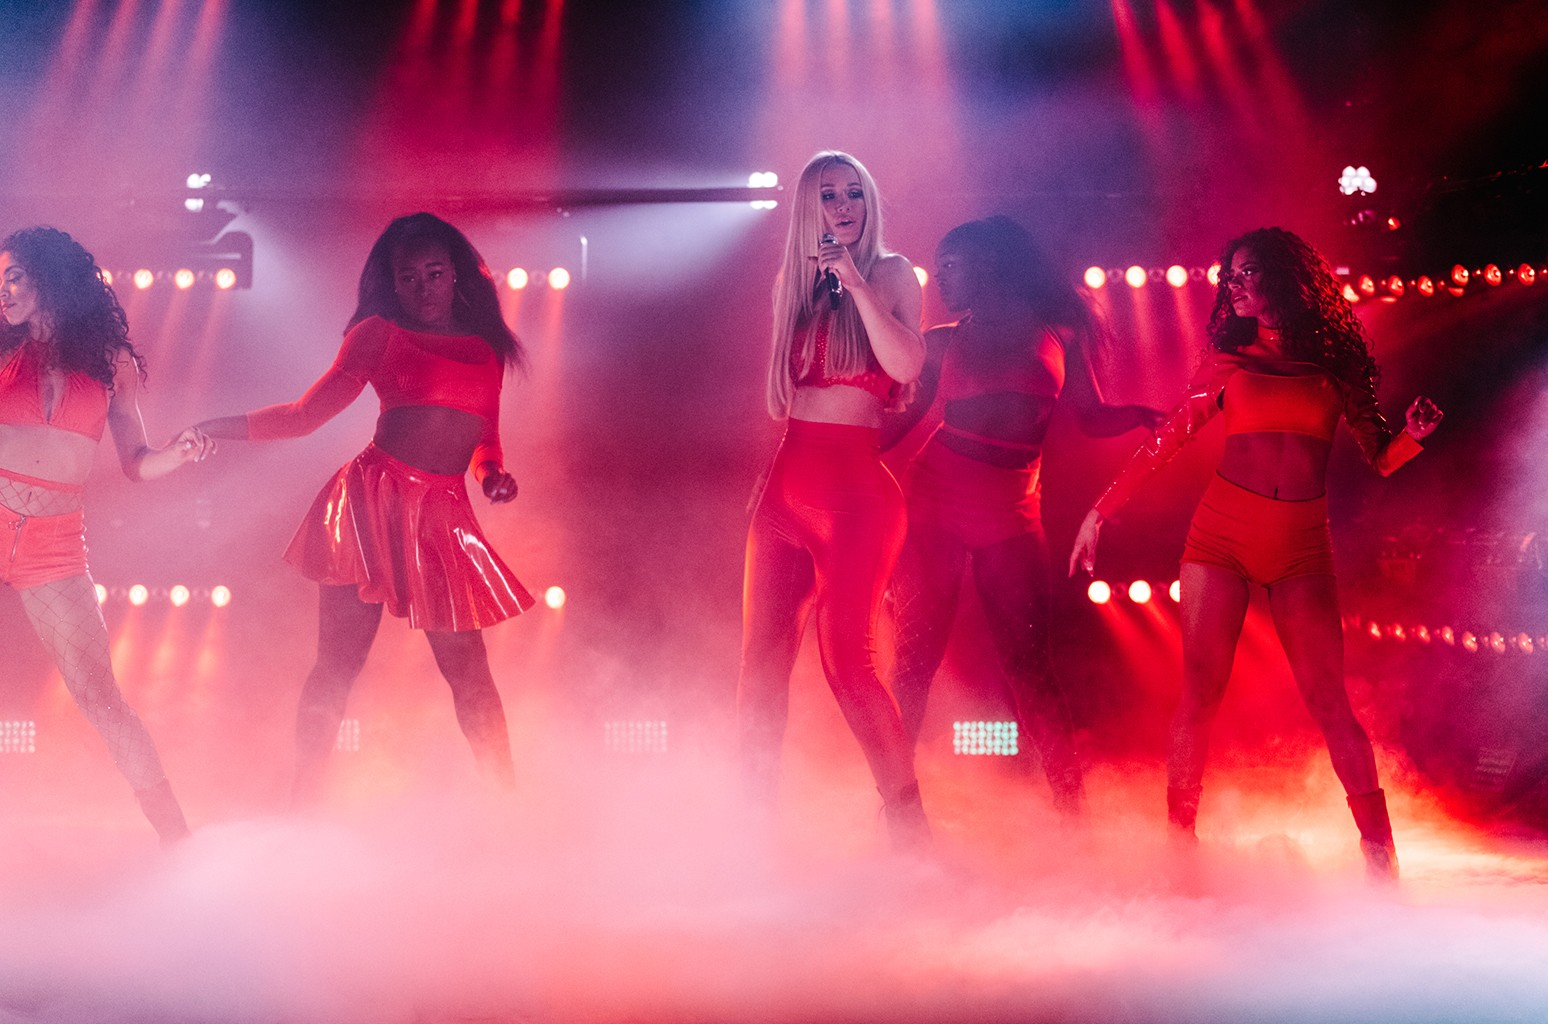 Iggy Azalea performs on The Late Late Show with James Corden on June 13, 2017 on the CBS Television Network.